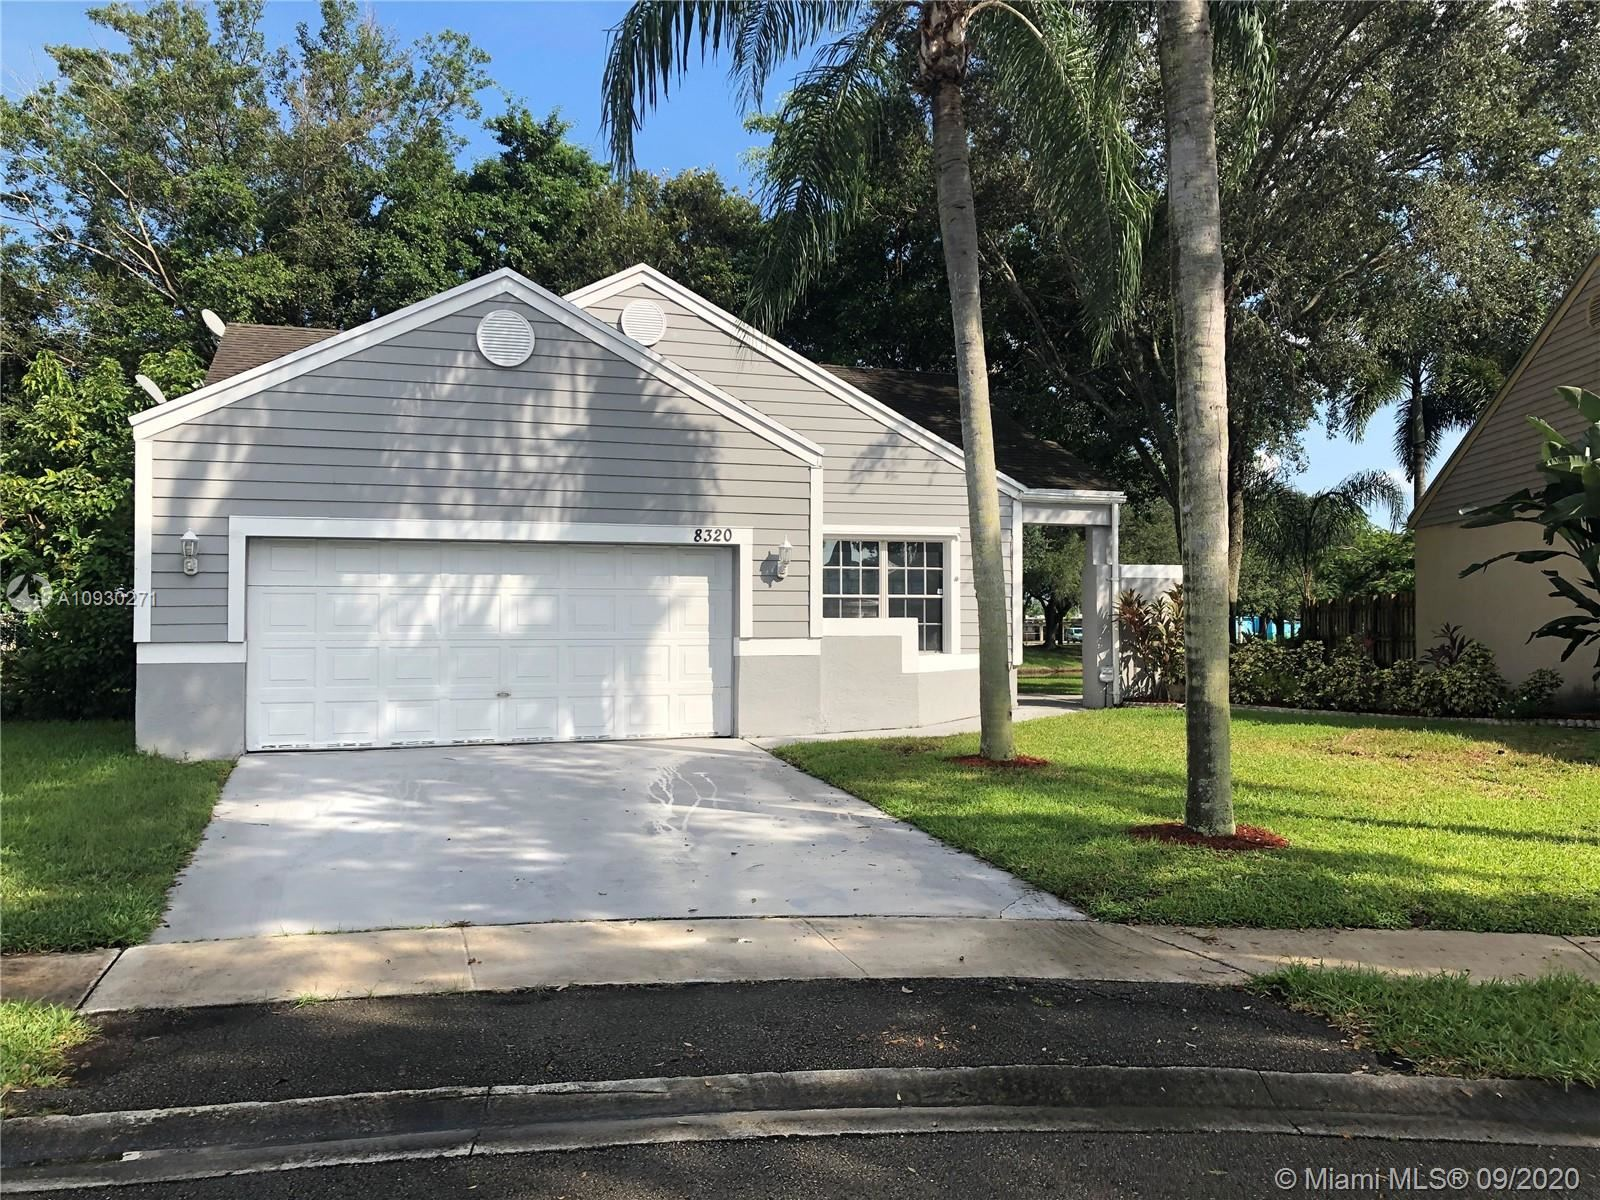 Photo of 8320 SW 12th St, Pembroke Pines, FL 33025 (MLS # A10930271)